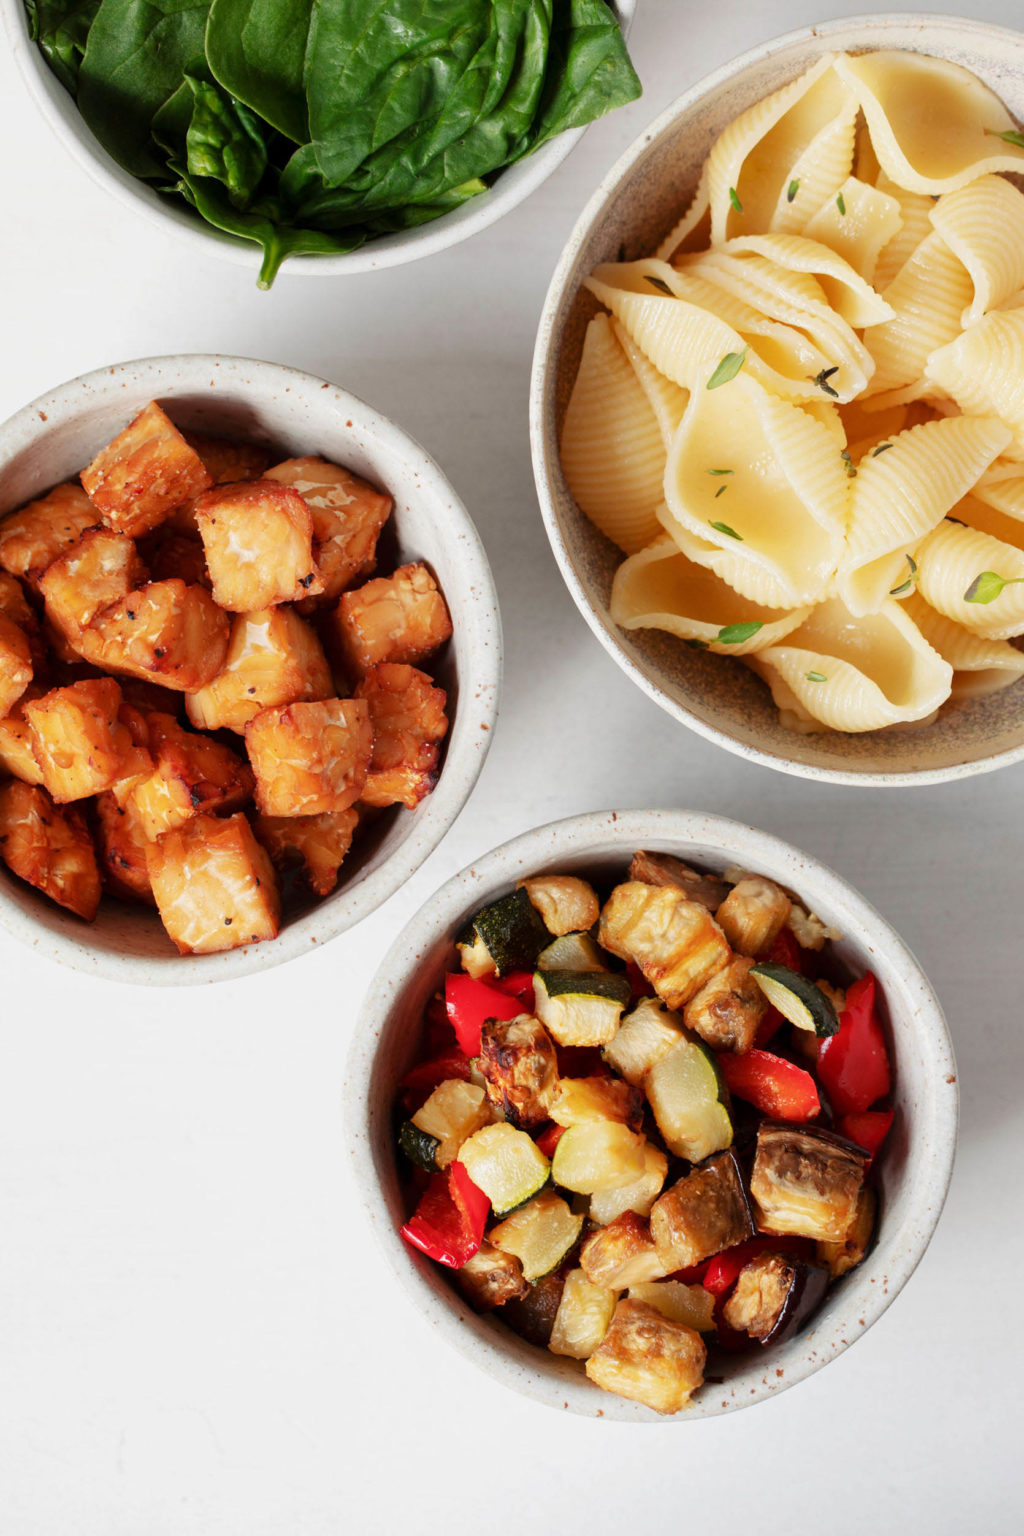 A few small, white bowls are filled with the ingredients needed to make a vegetable pasta salad.